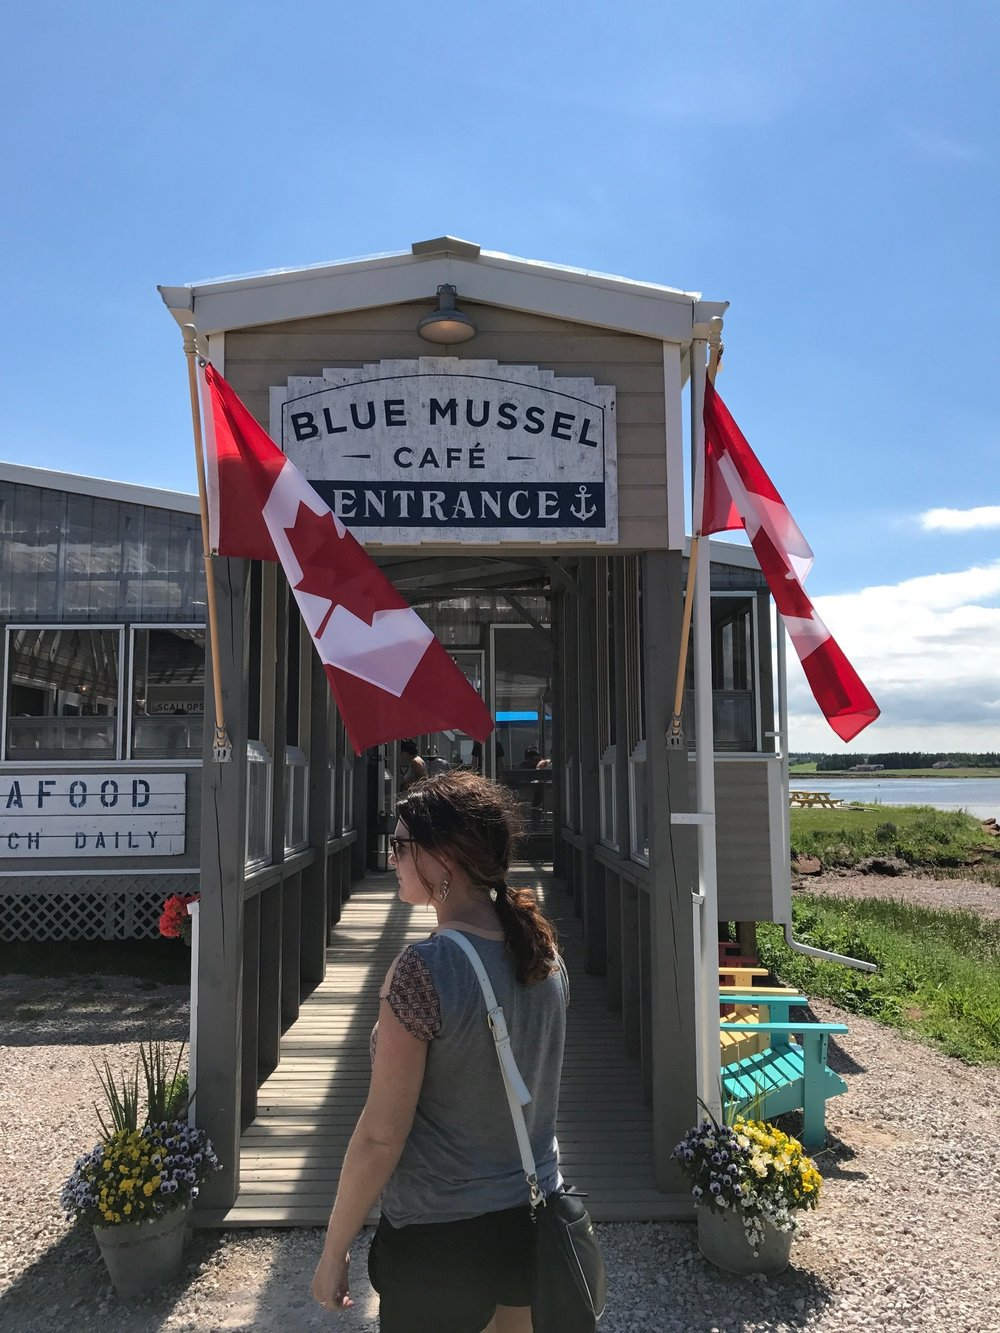 Entrance to Blue Mussel Cafe